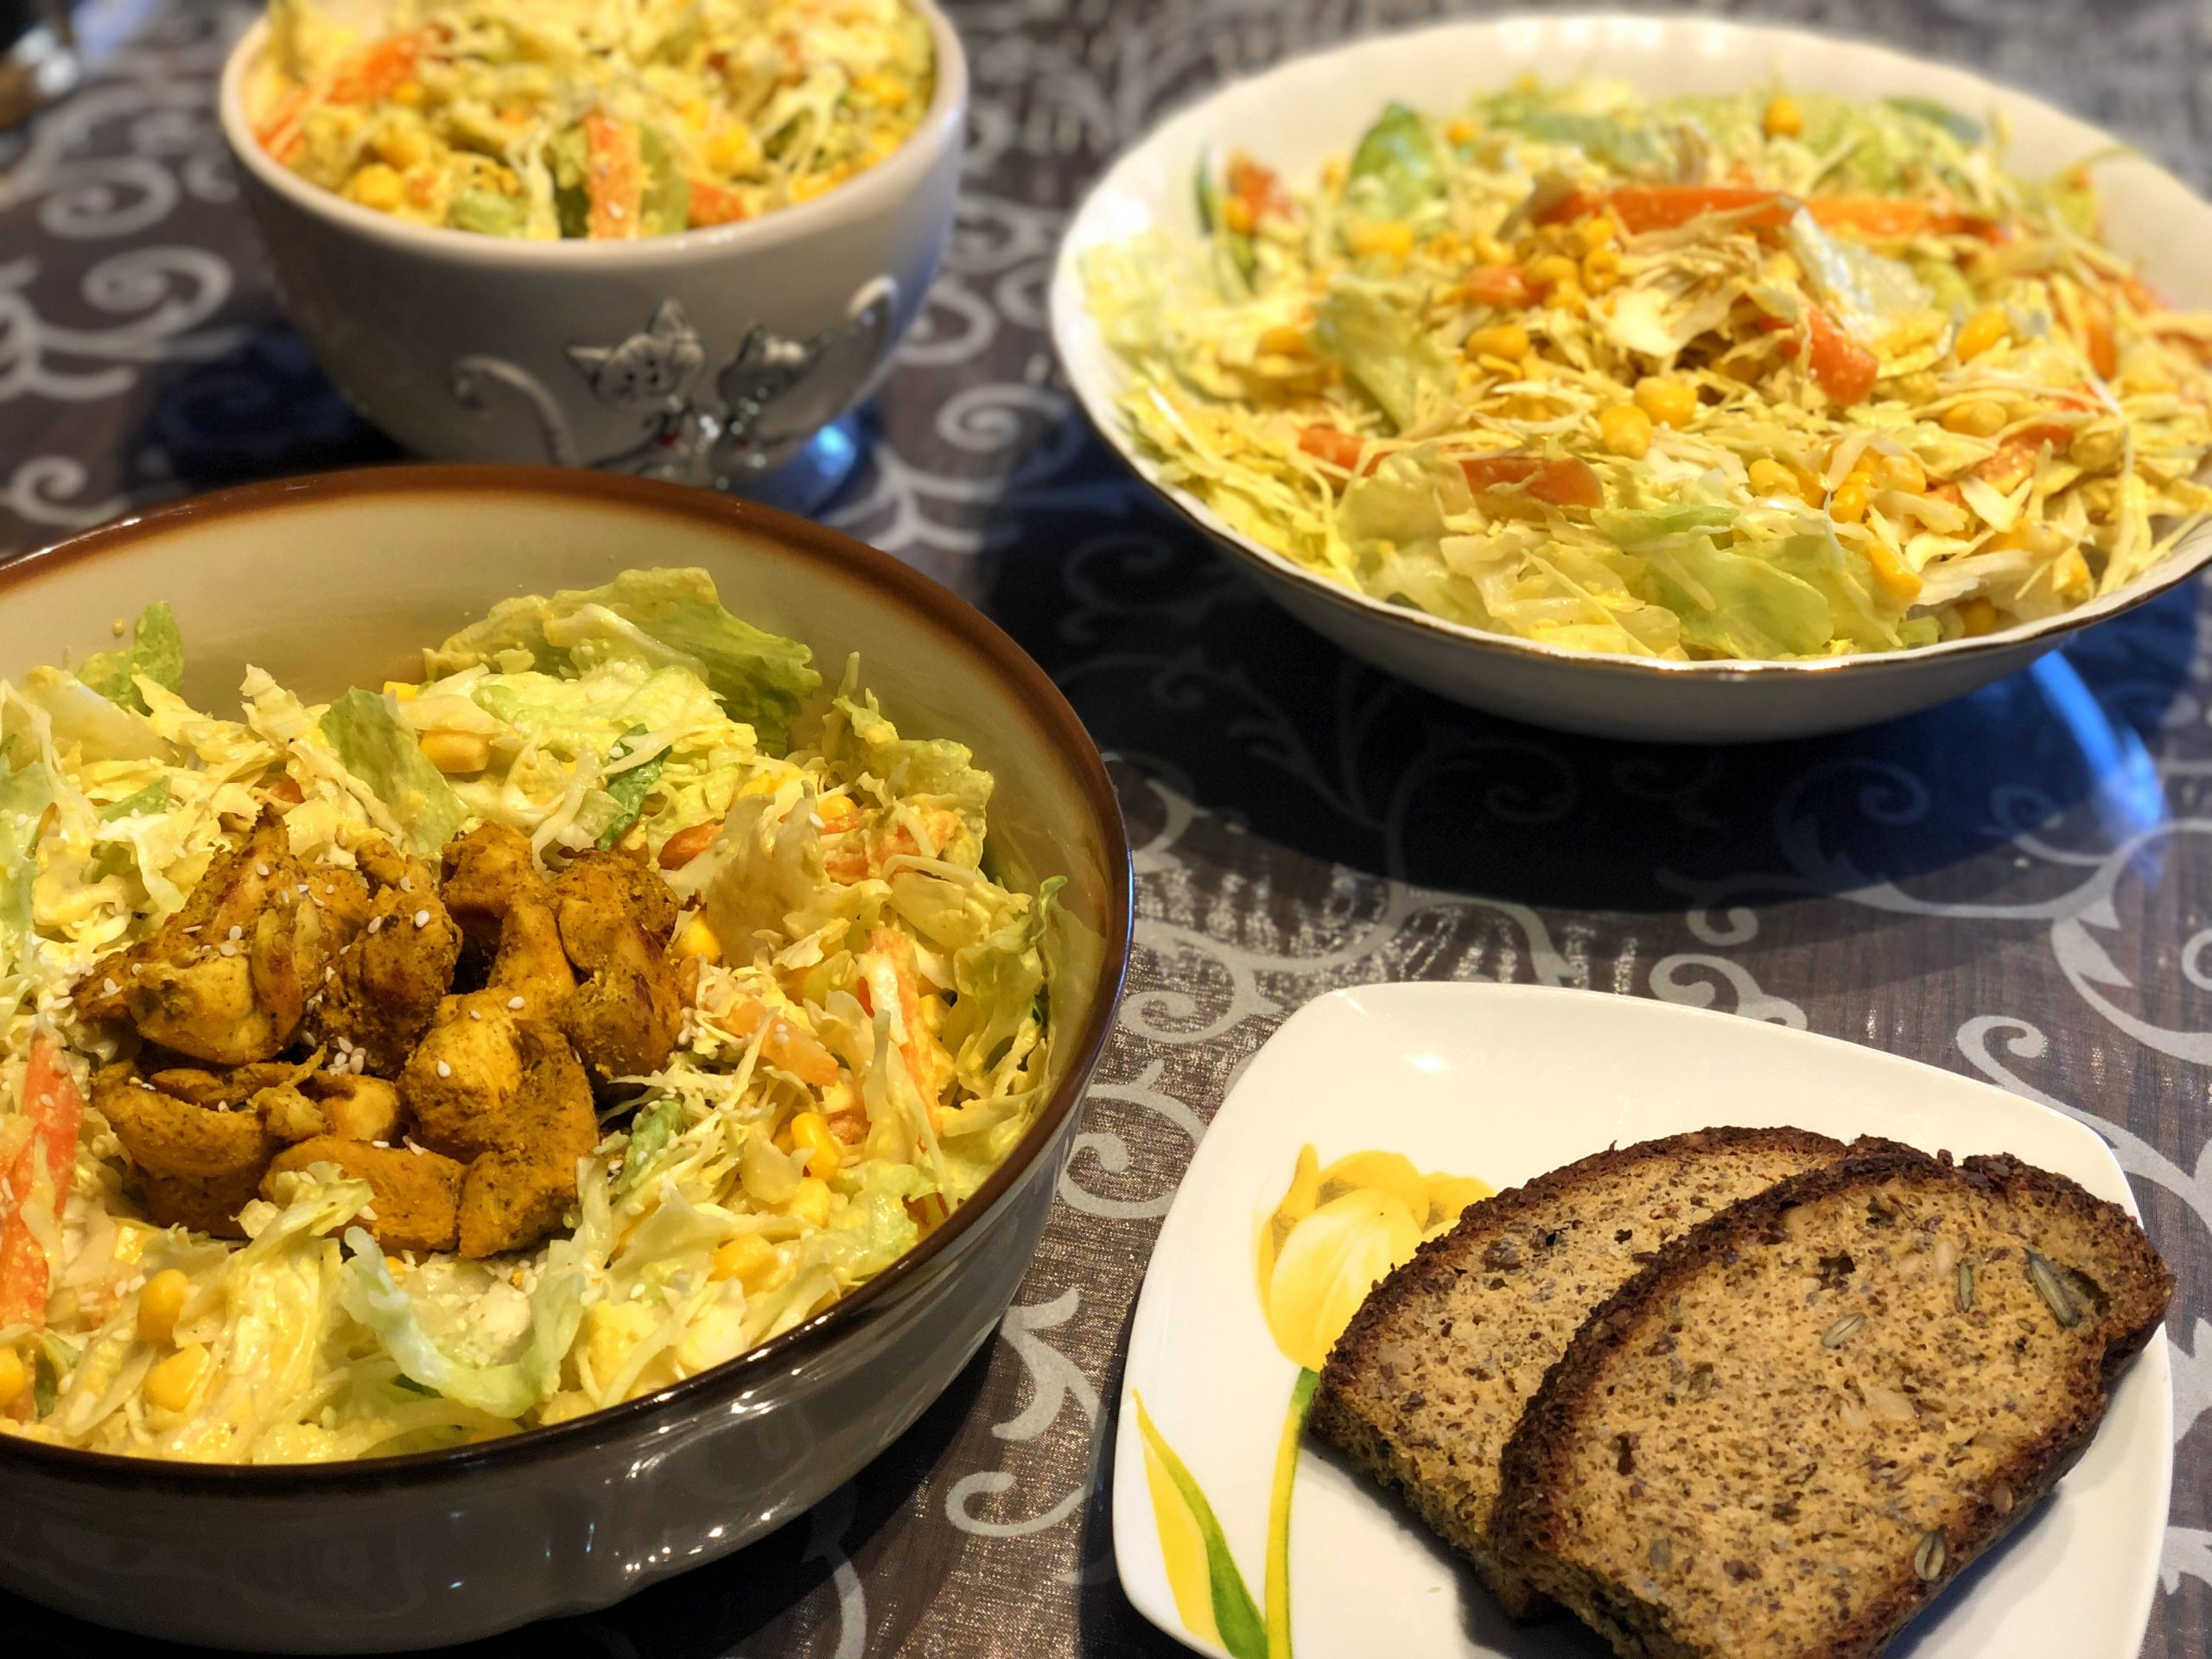 Salad bowl with curry chicken and hummus dressing